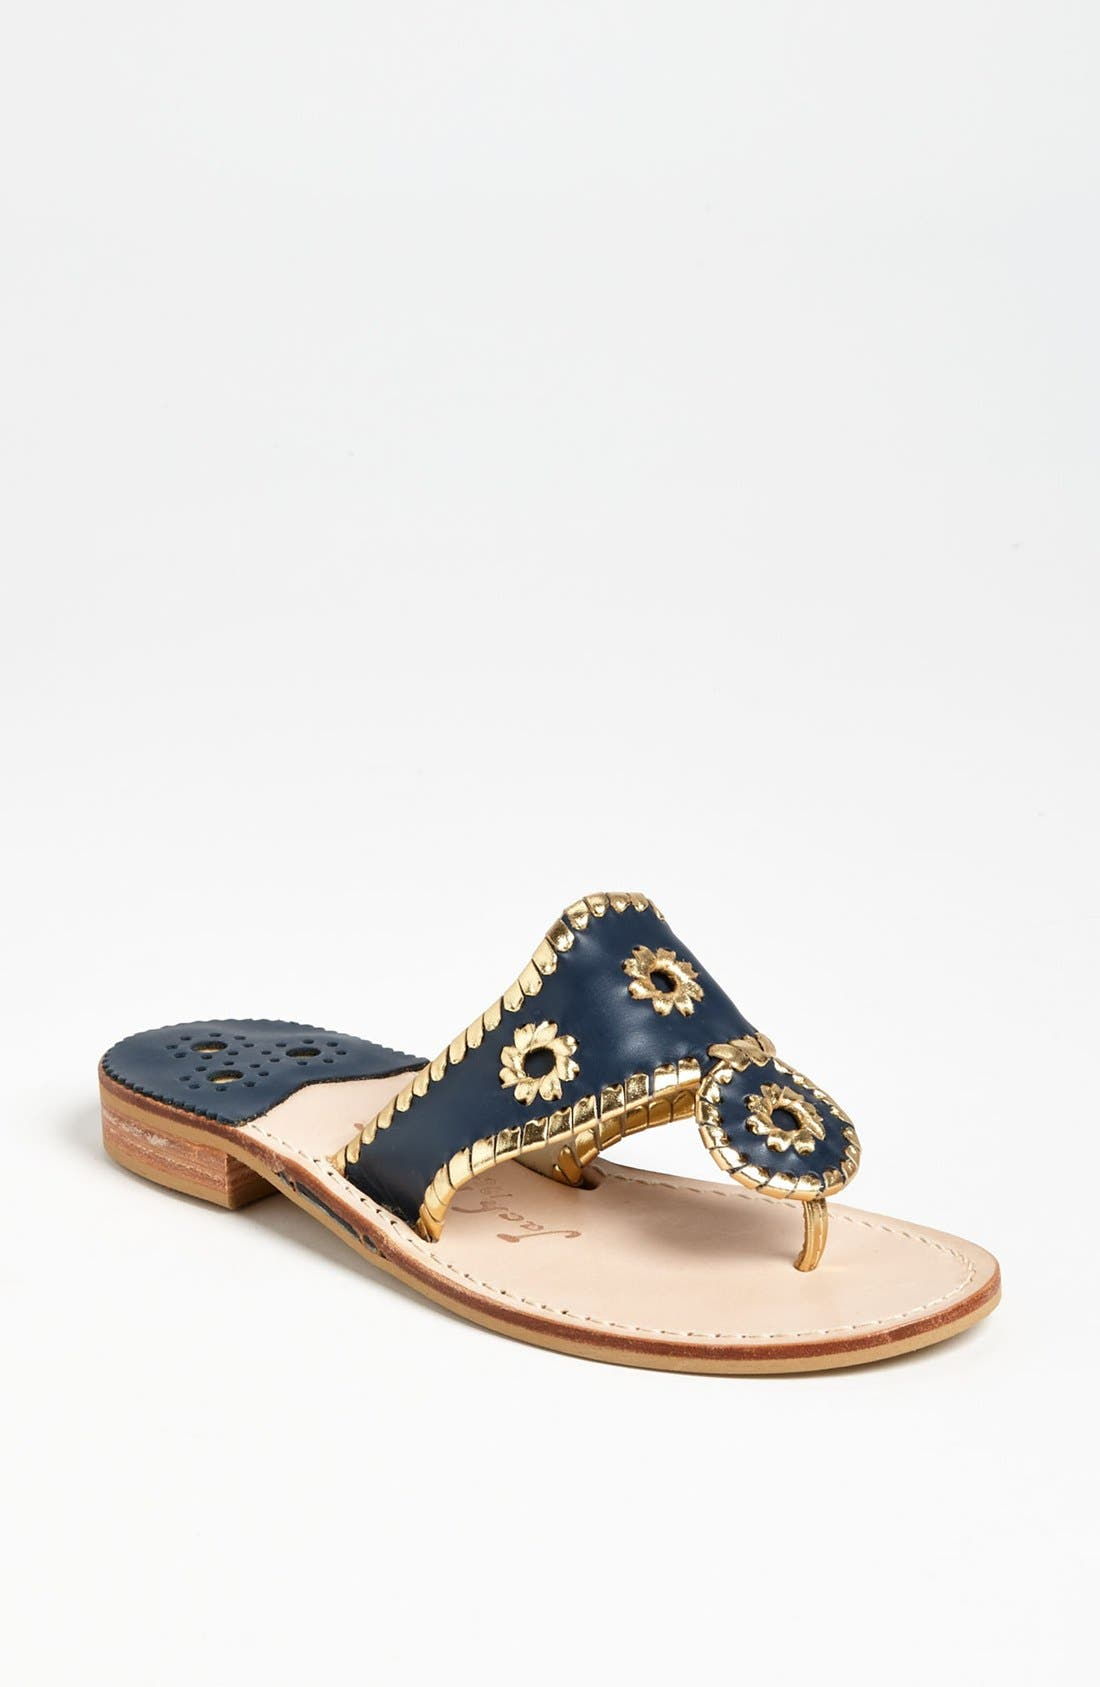 JACK ROGERS Nantucket Whipstitch Thong Sandal in Navy/ Gold